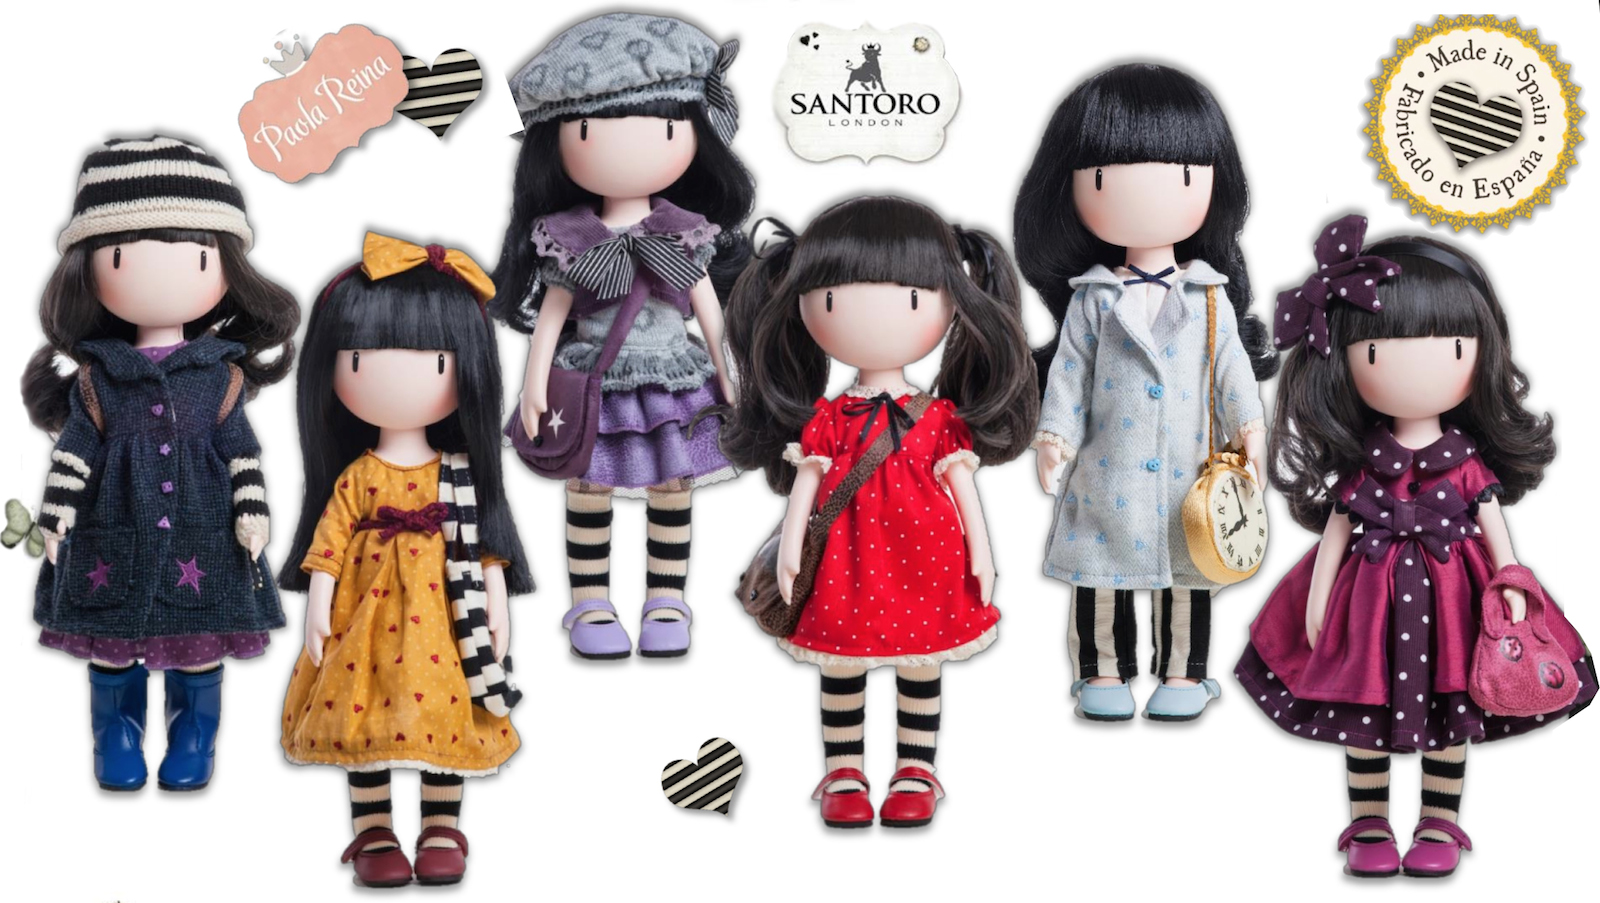 Stocking Santoro Dolls!